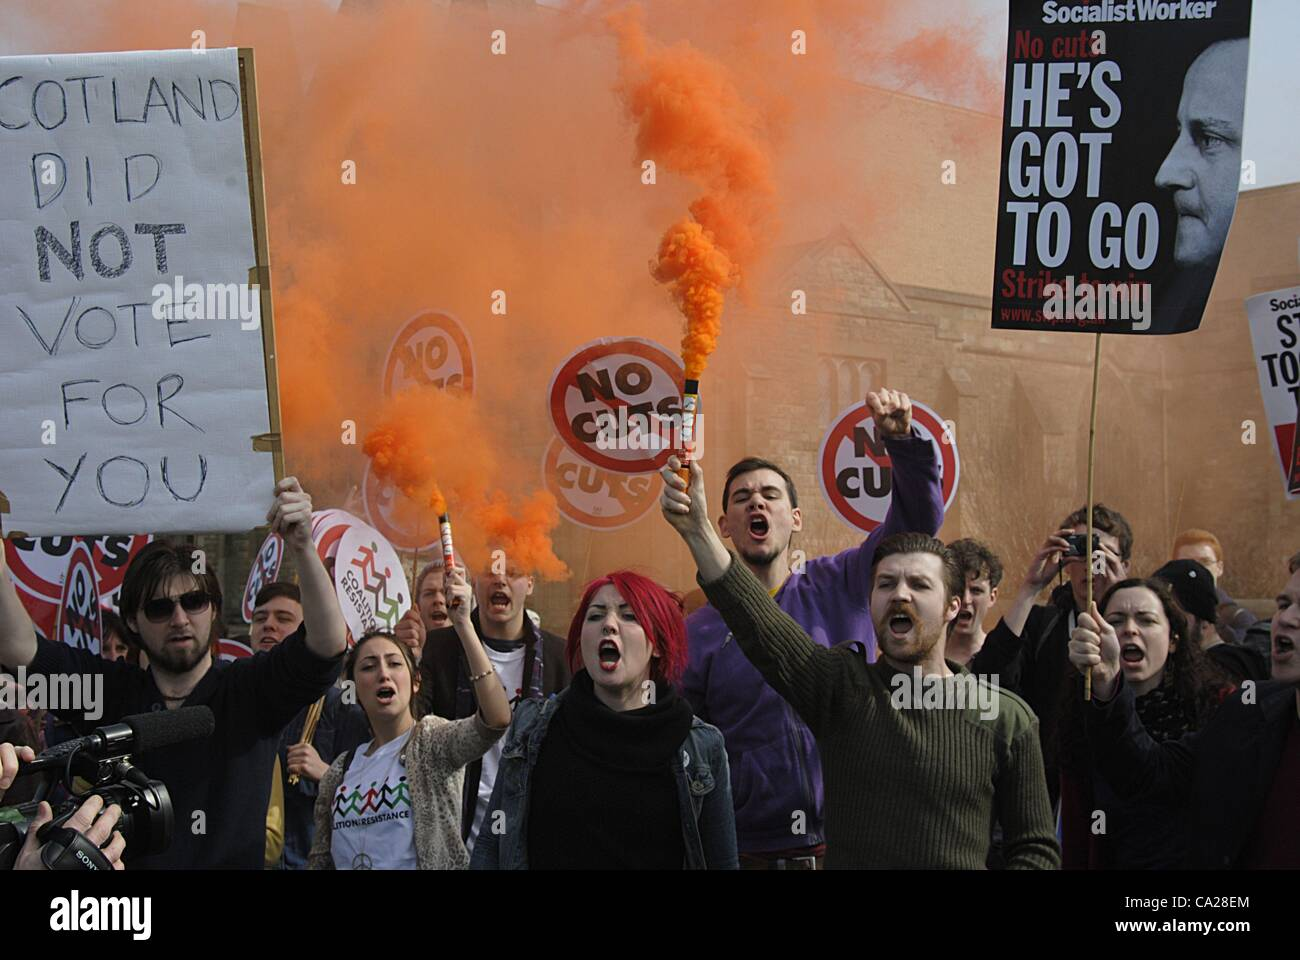 "Troon, UK. 24/3/12 ""La jeunesse lutte pour l'emploi"" de protestation organisée par le Scottish Photo Stock"